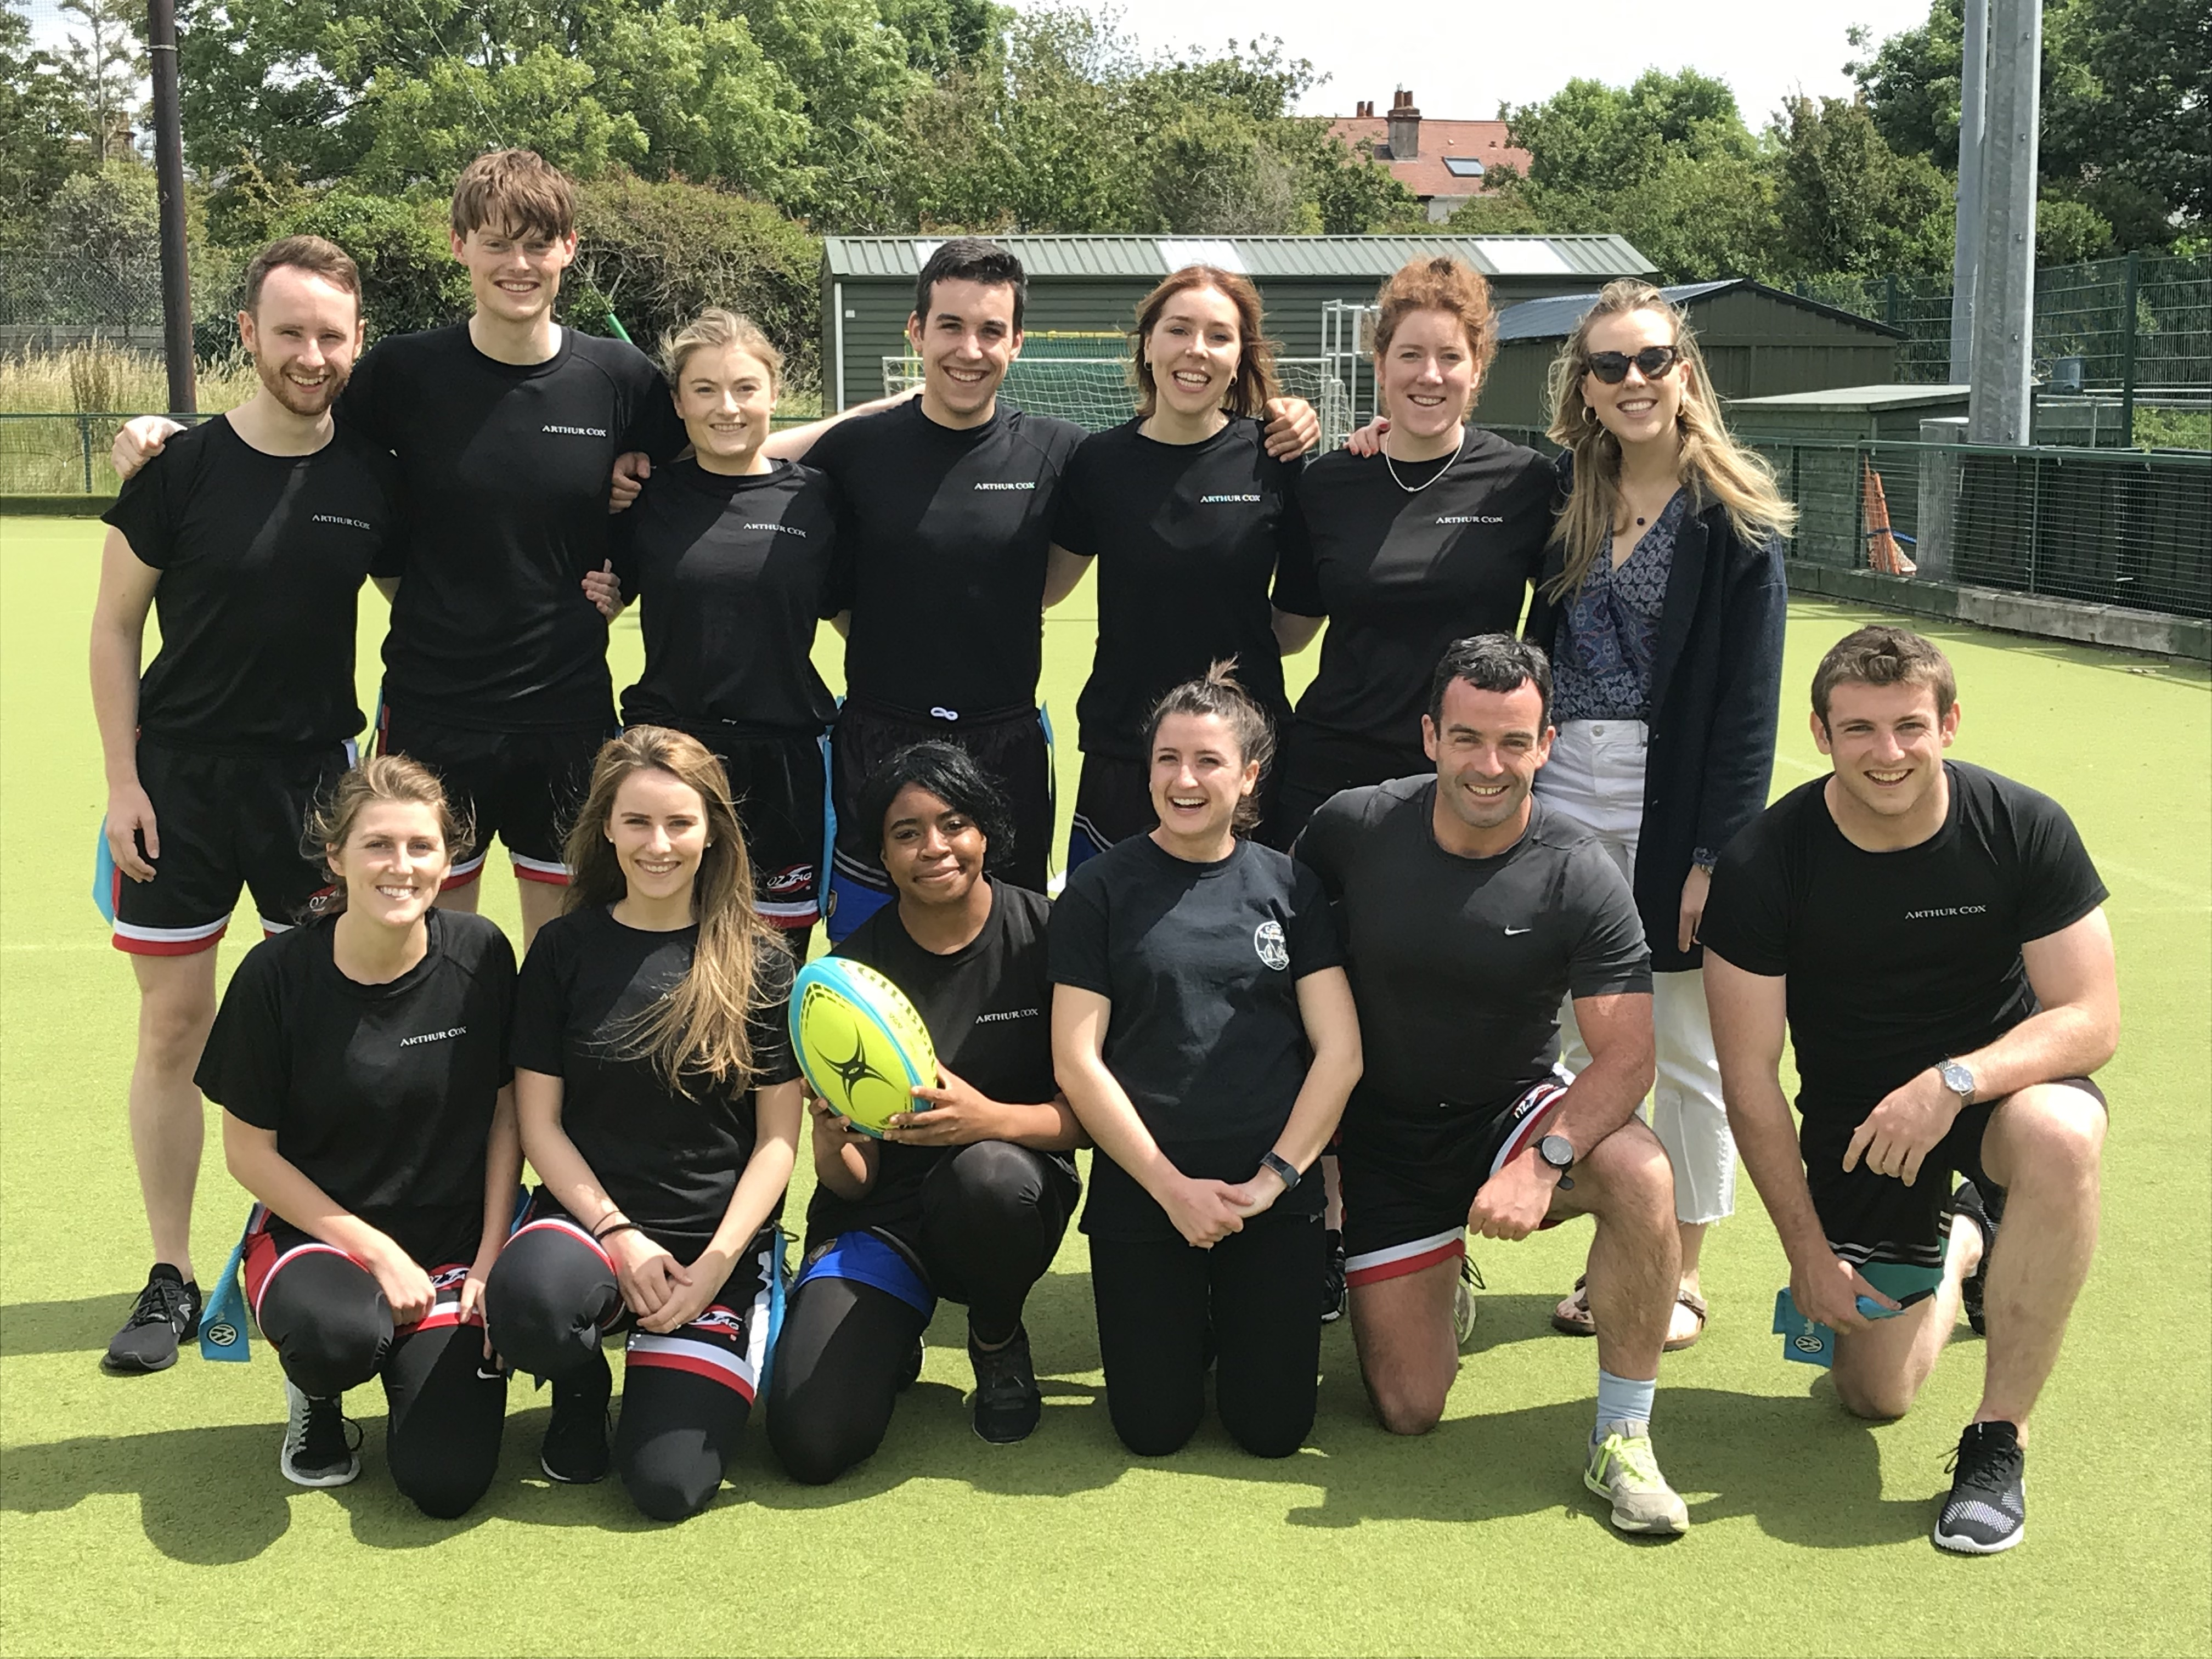 Tag Rugby team from Arthur Cox Law at the SYS 2019 tournament